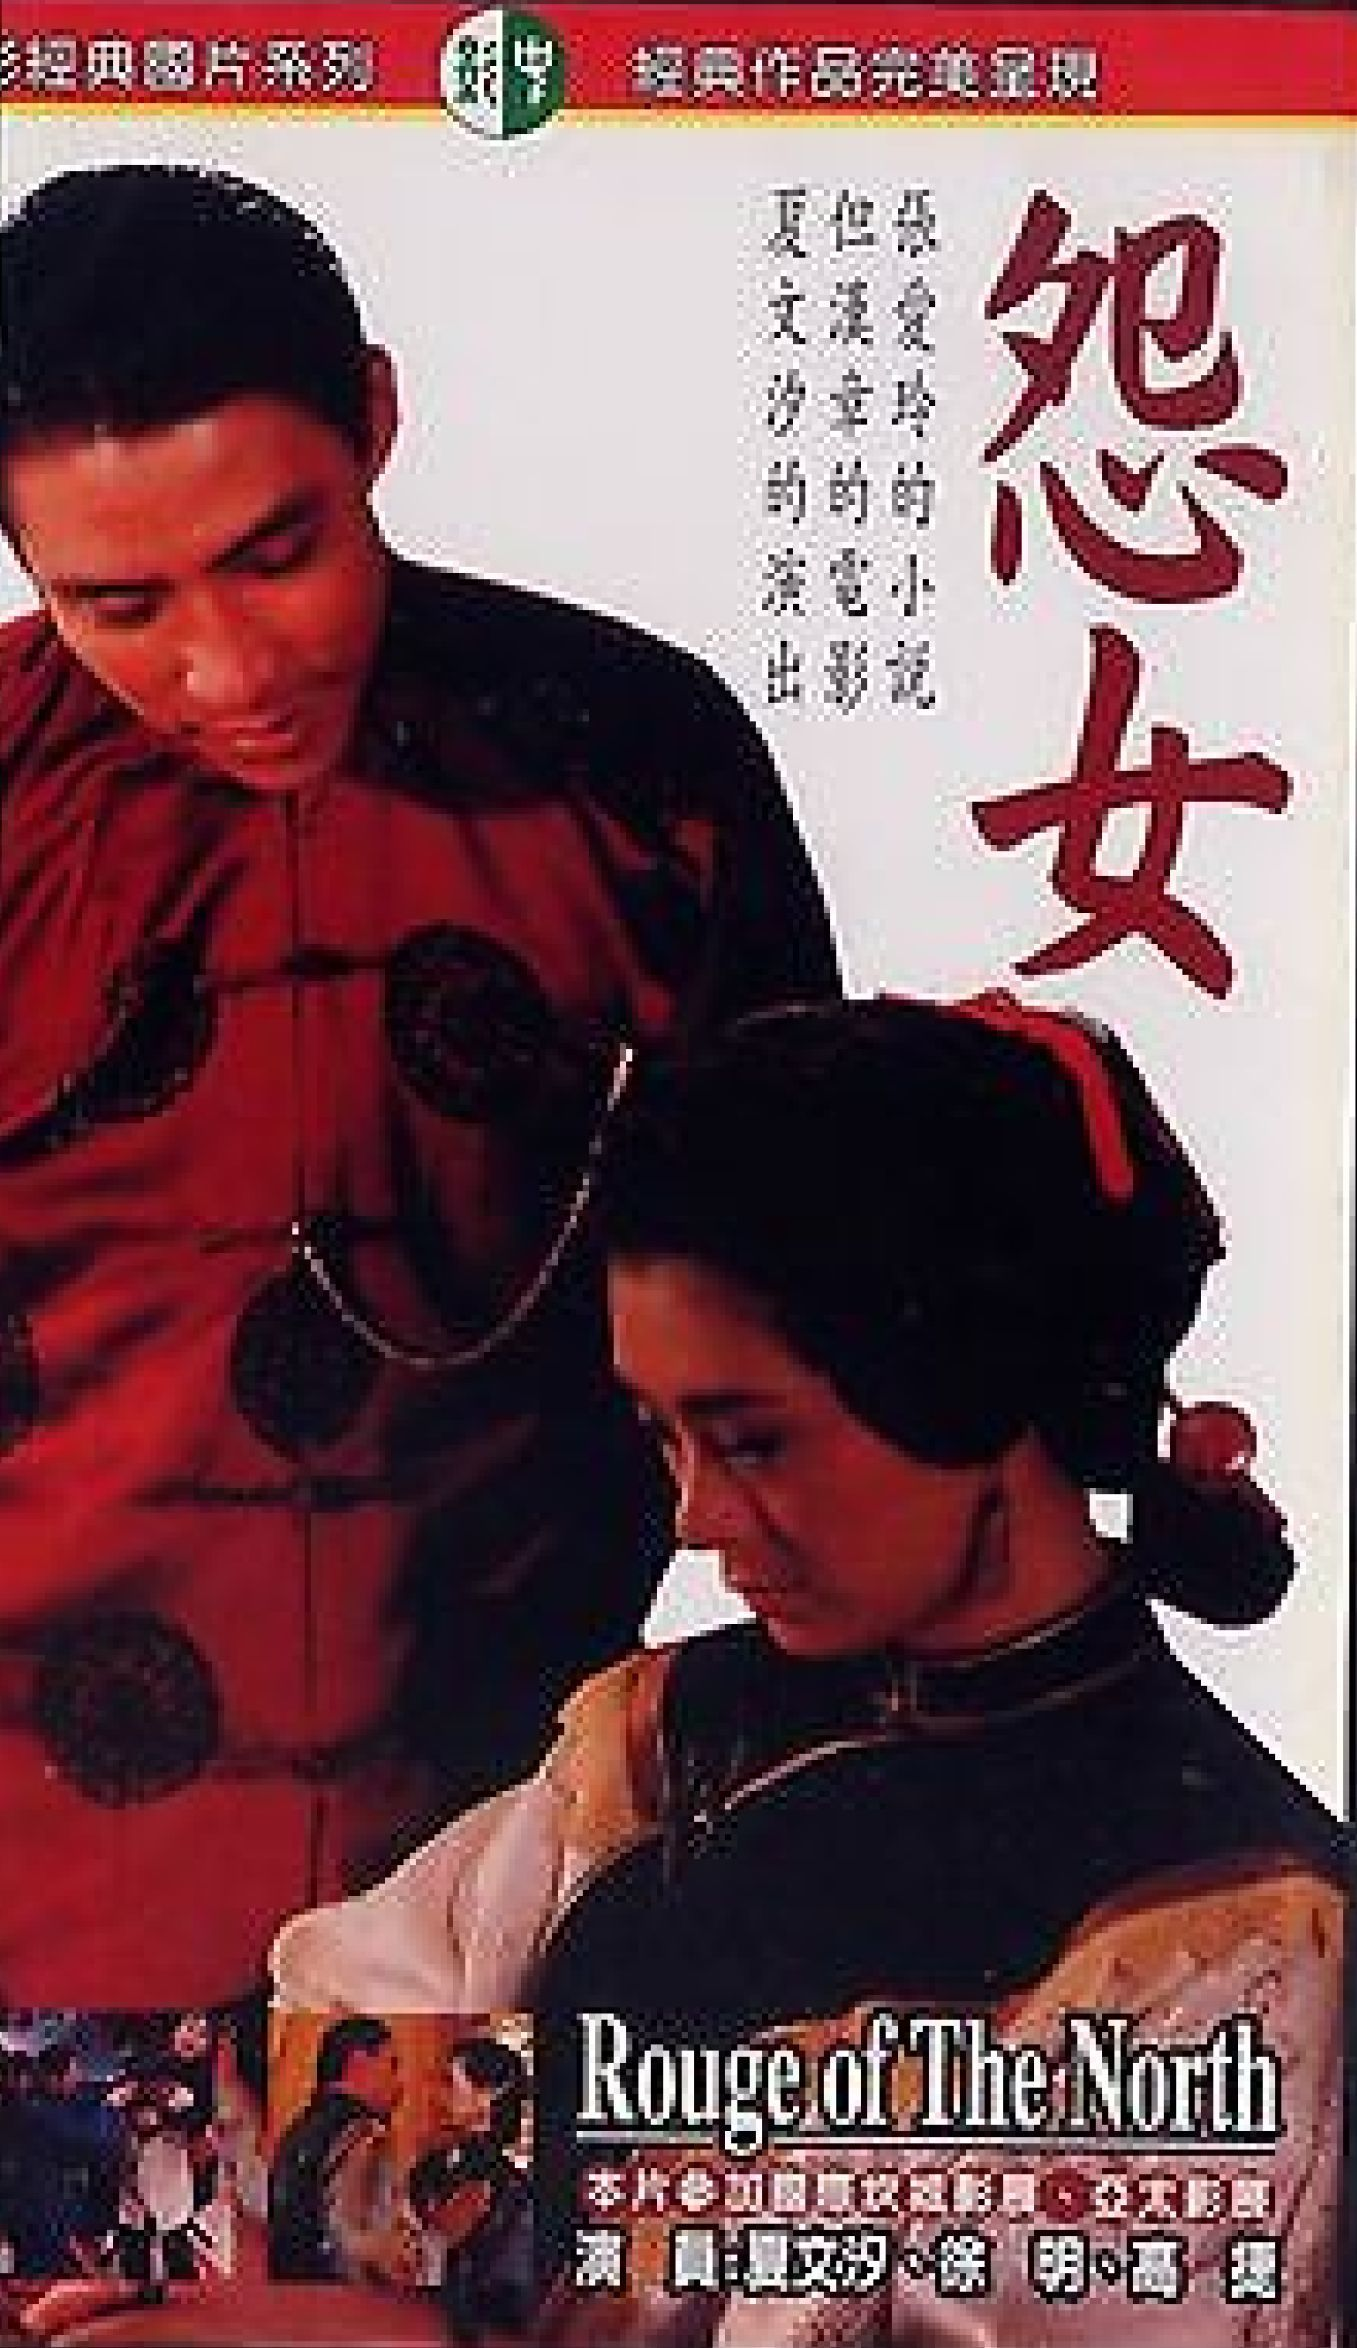 an overview of the treatment of women in china through history Book summary about the woman exploring how her chinese cultural history can be reconciled with her and womanhood are defined is through.